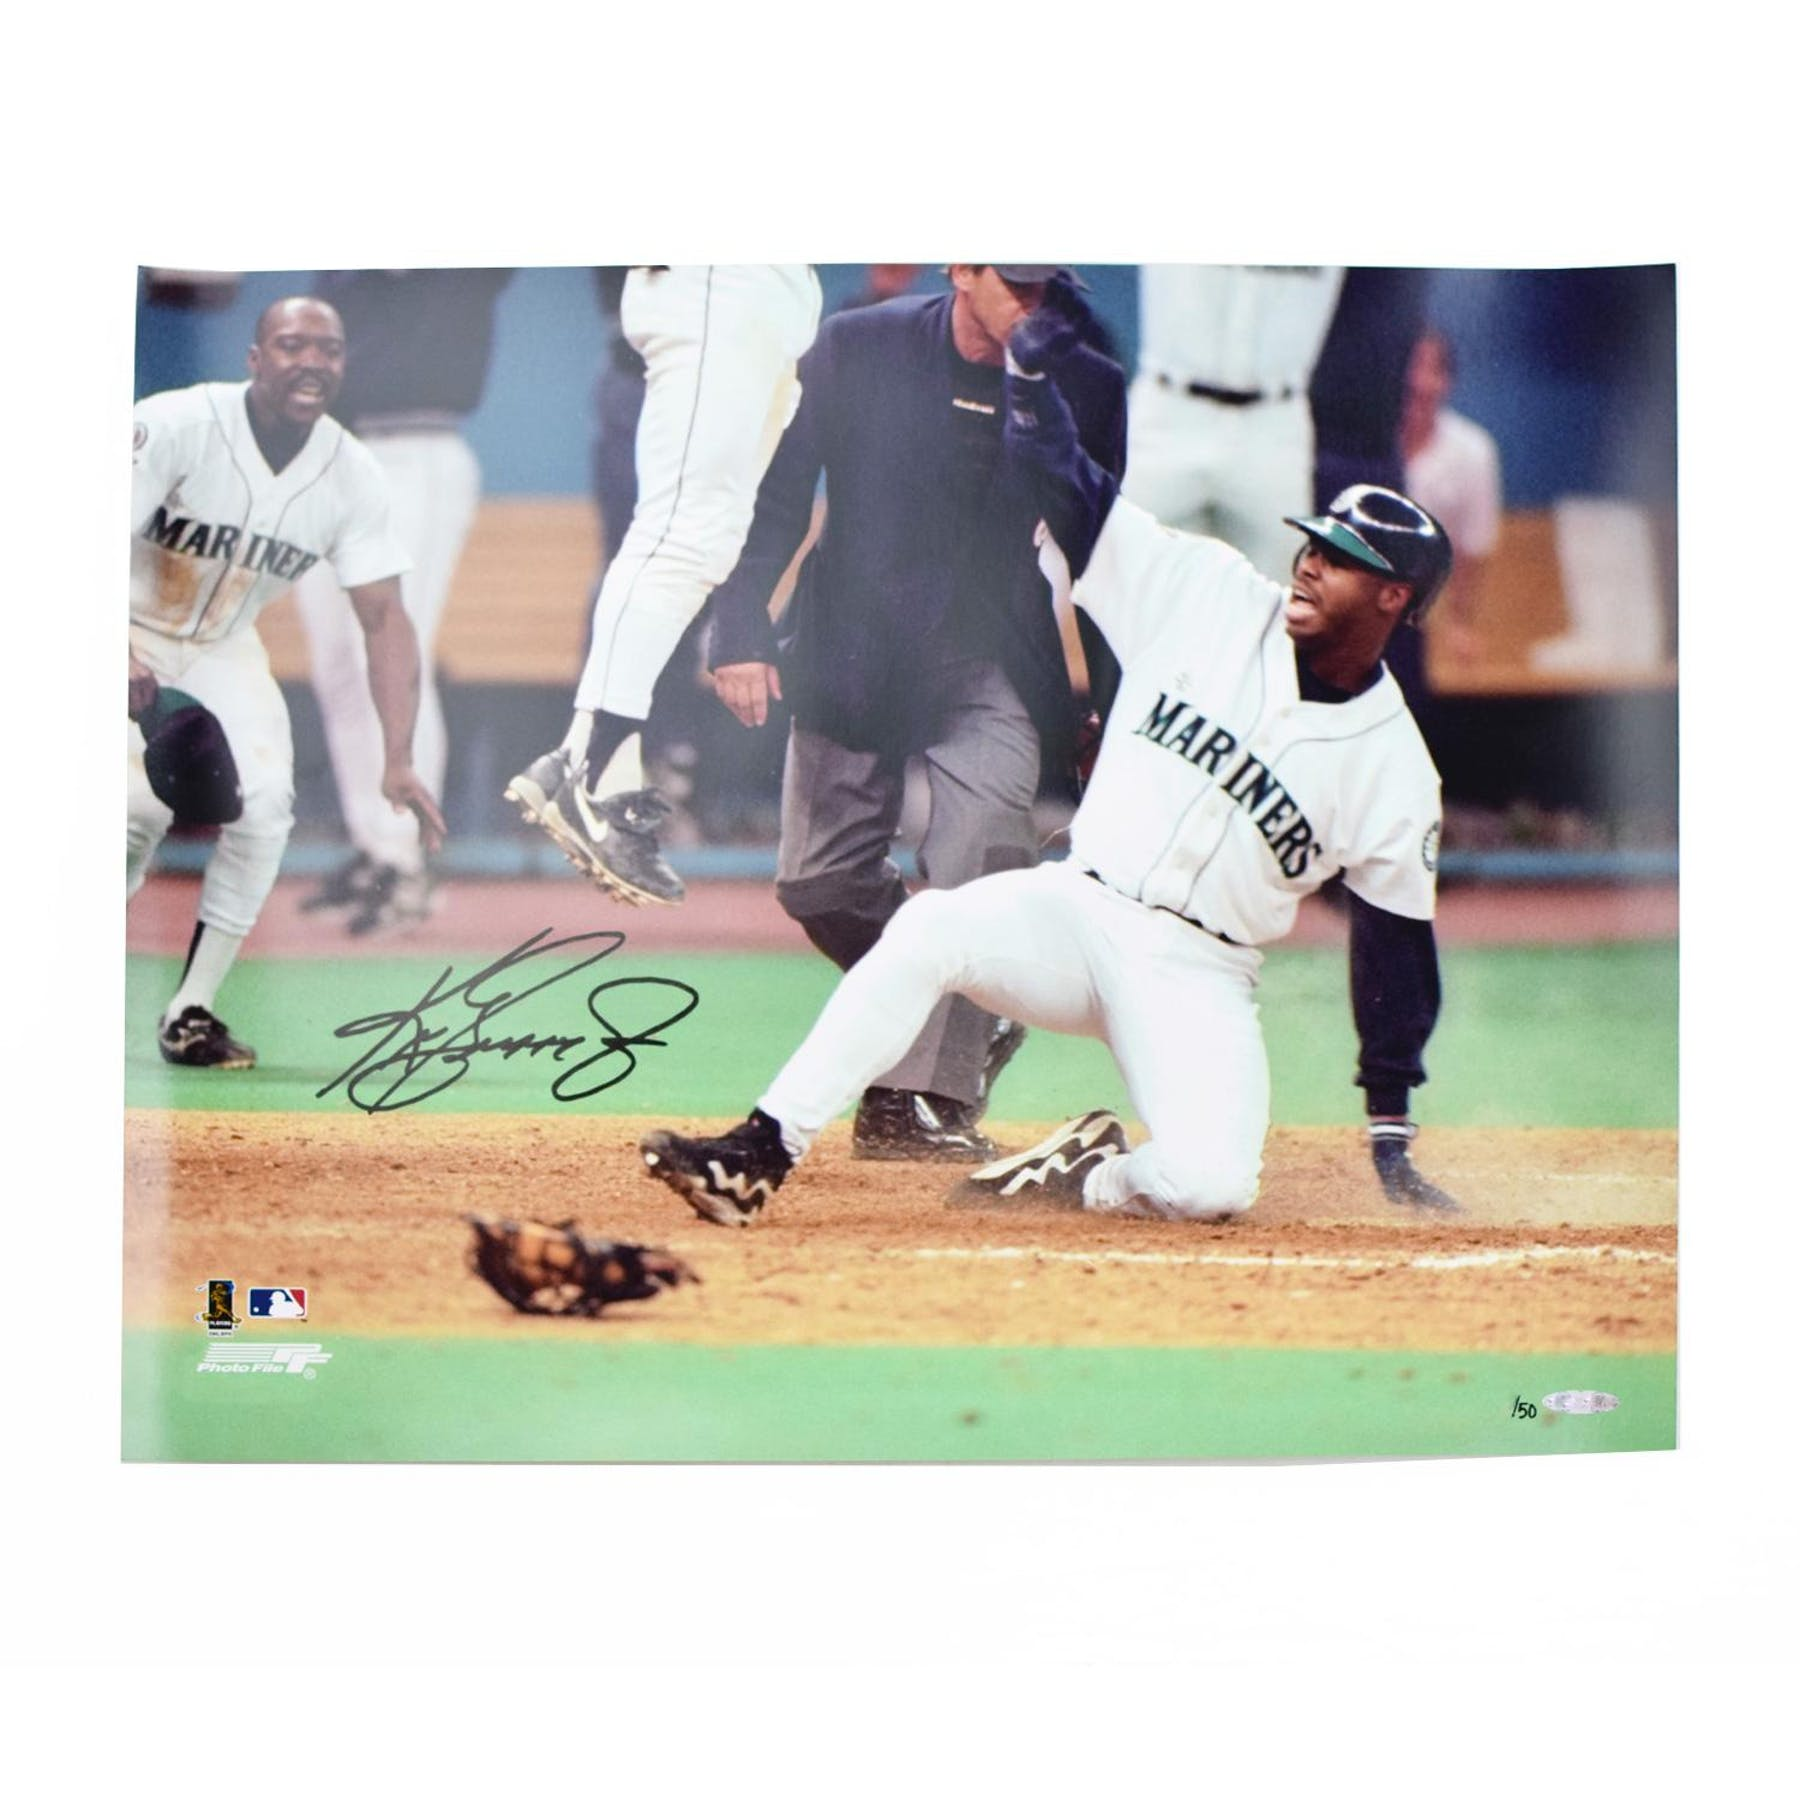 996a18e61d Ken Griffey Jr Seatlle Mariners UDA Autographed Sliding 16 x 20 Photo LE  /50 | DA Card World